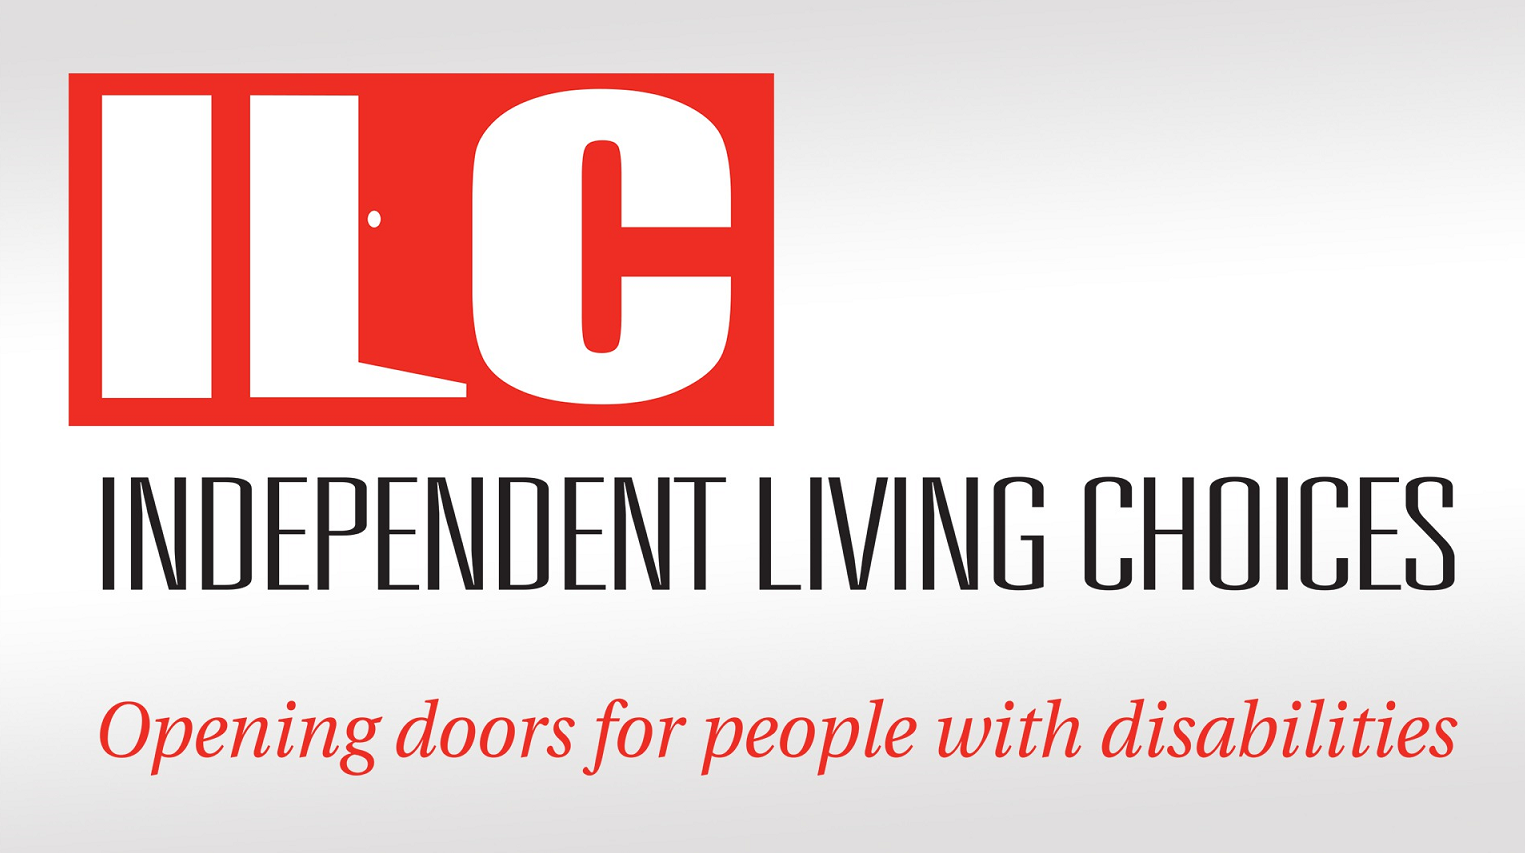 independent living choices_1557258647909.PNG.jpg